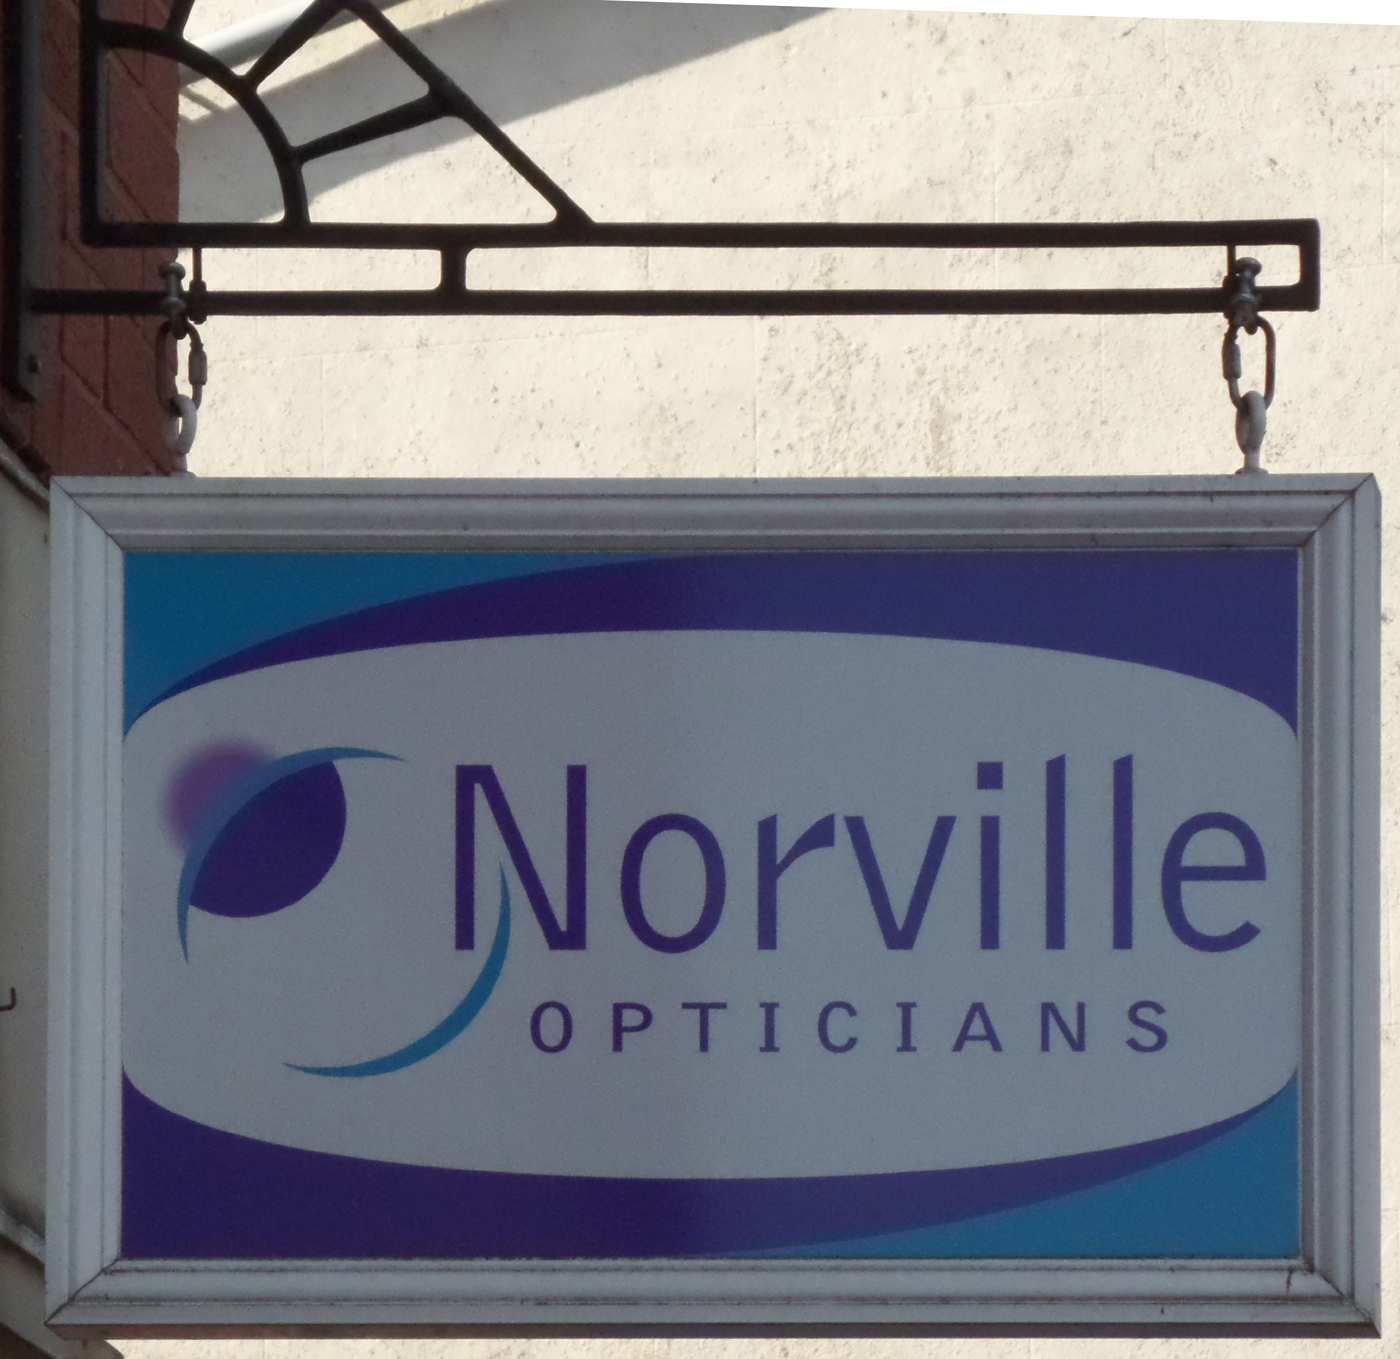 Norville (optician)